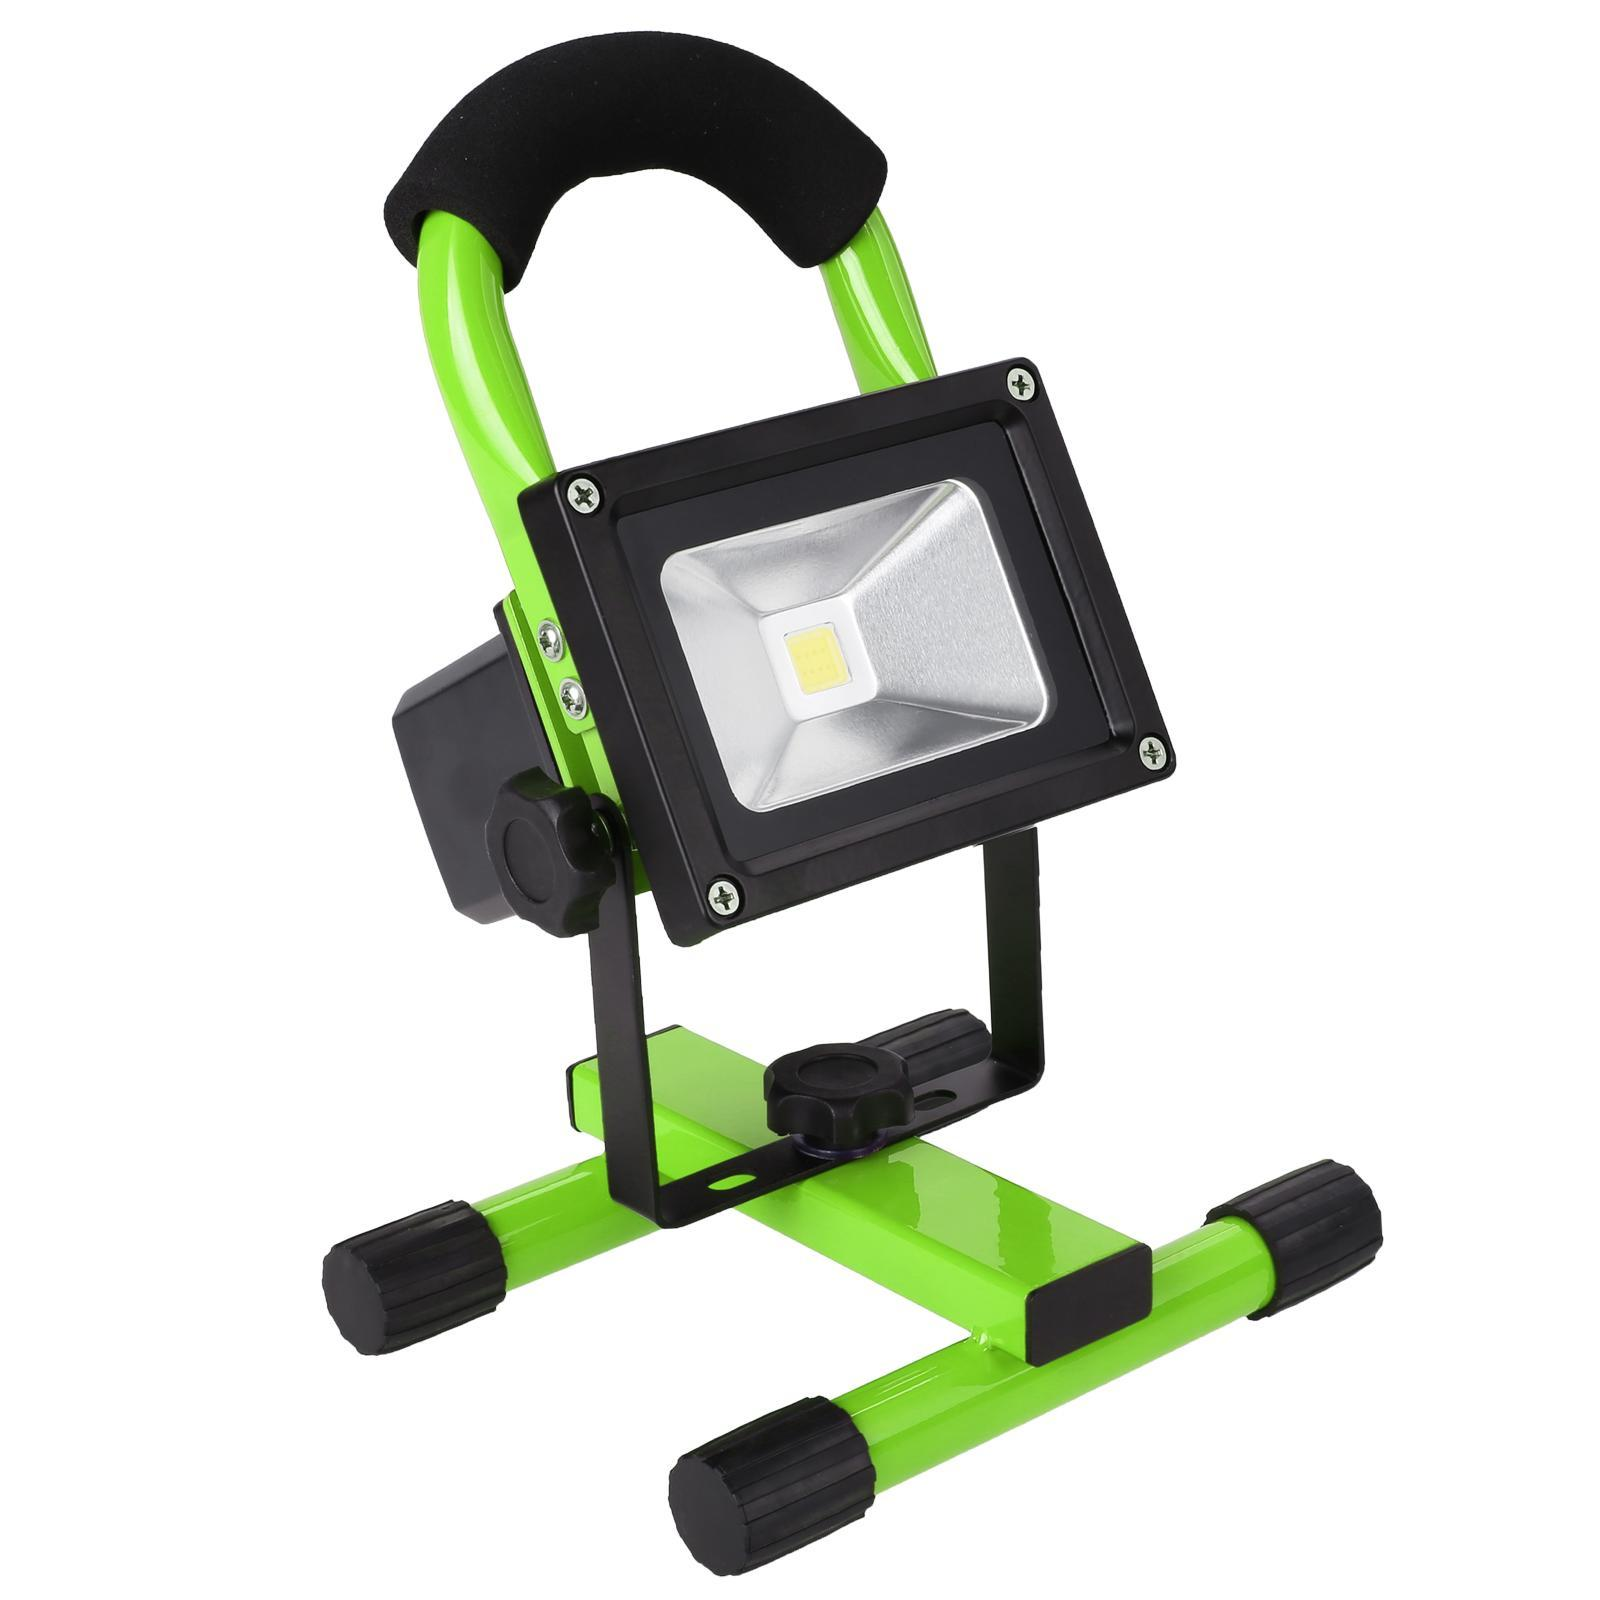 10W Portable Hi Power LED Work Light Outdoor Rechargeable